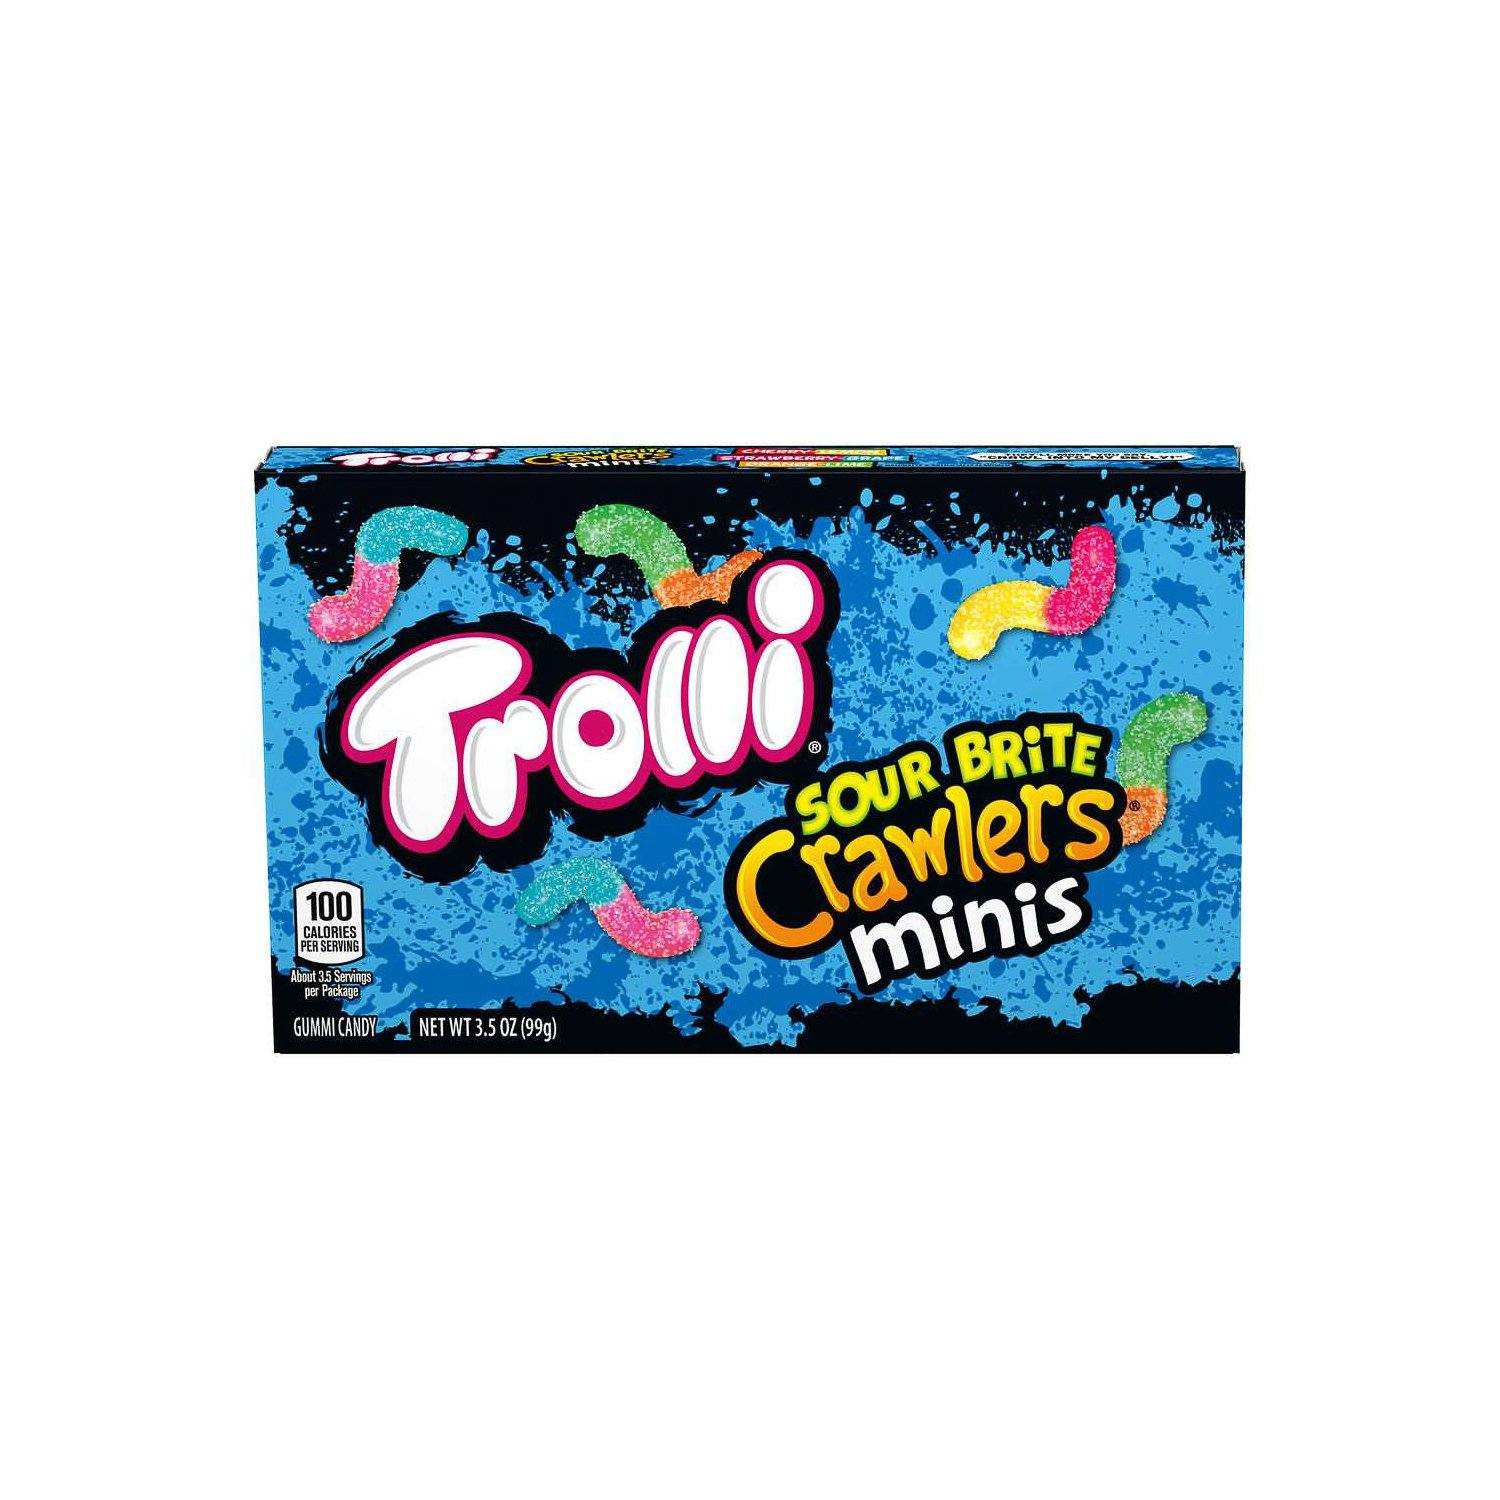 Trolli Crawlers Meltable Trolli Sour Brite Minis 3.5 Ounce